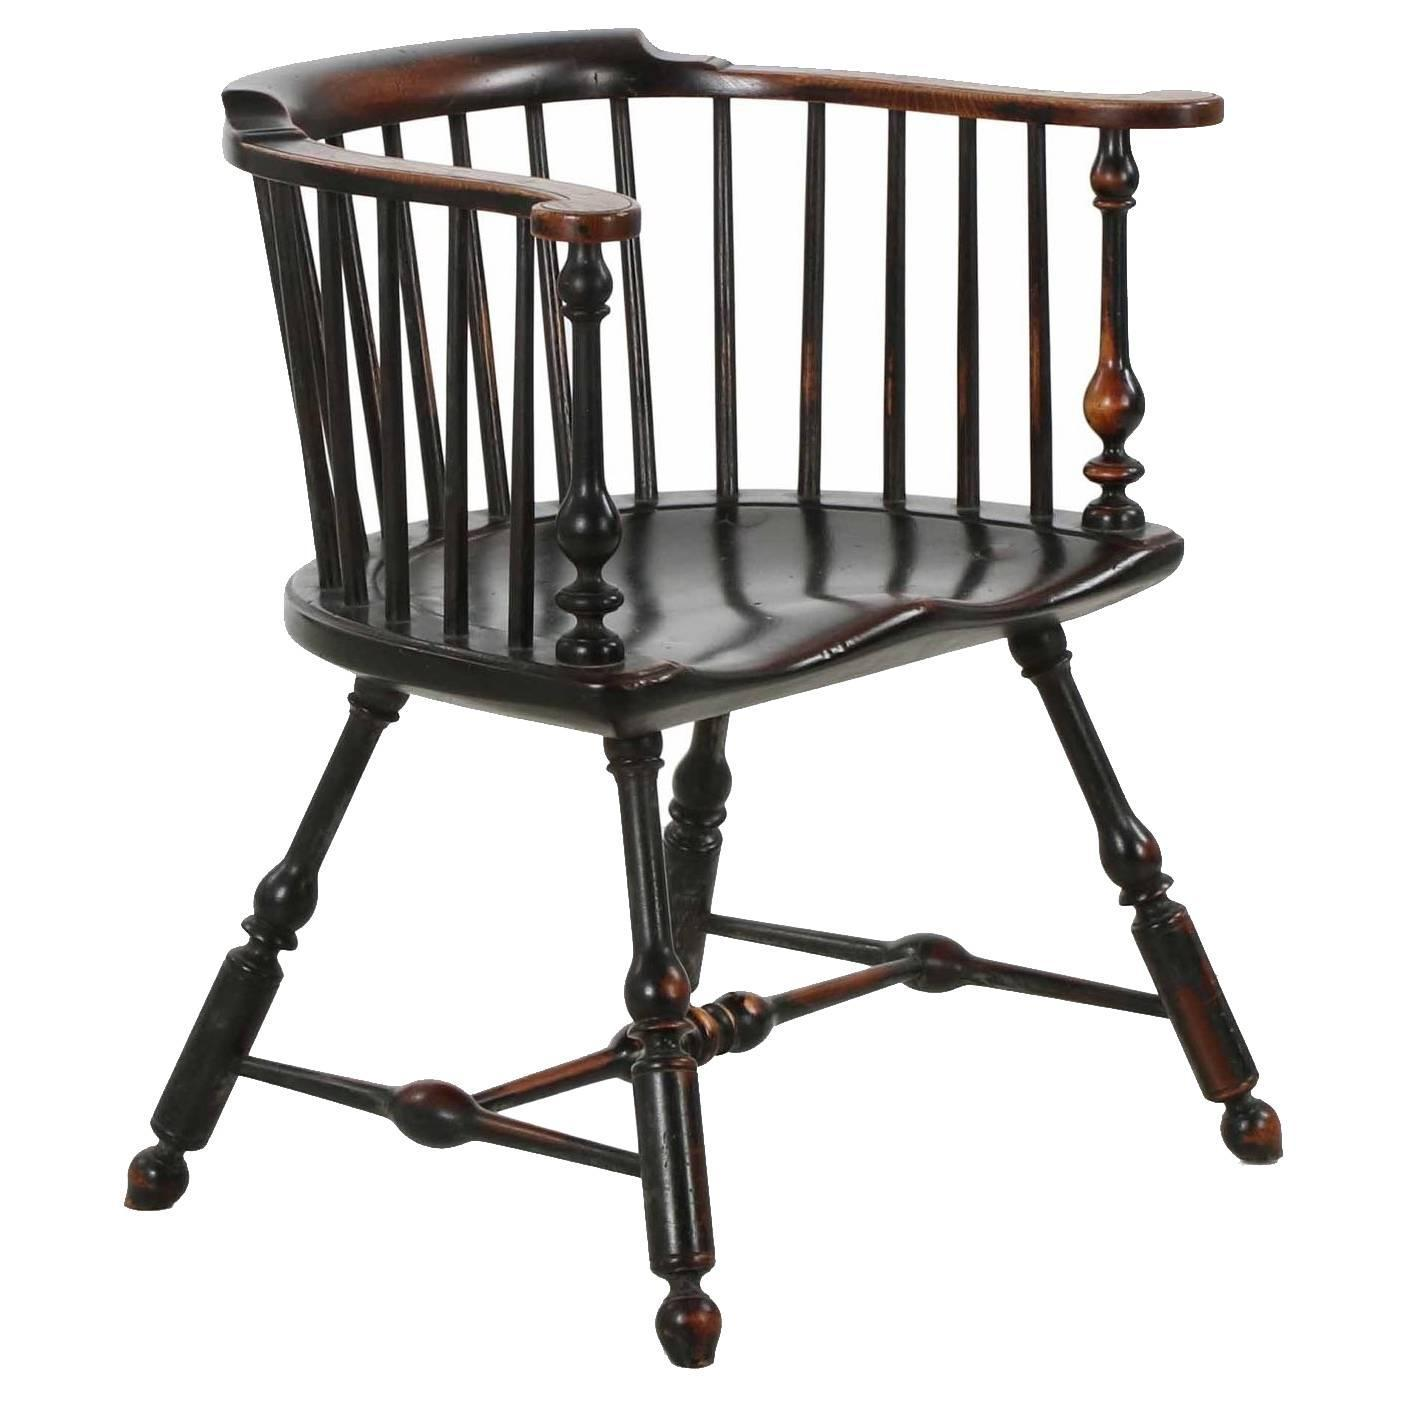 Pair of American Painted Lowback Windsor Antique Chairs, Early 20th Century  at 1stdibs - Pair Of American Painted Lowback Windsor Antique Chairs, Early 20th